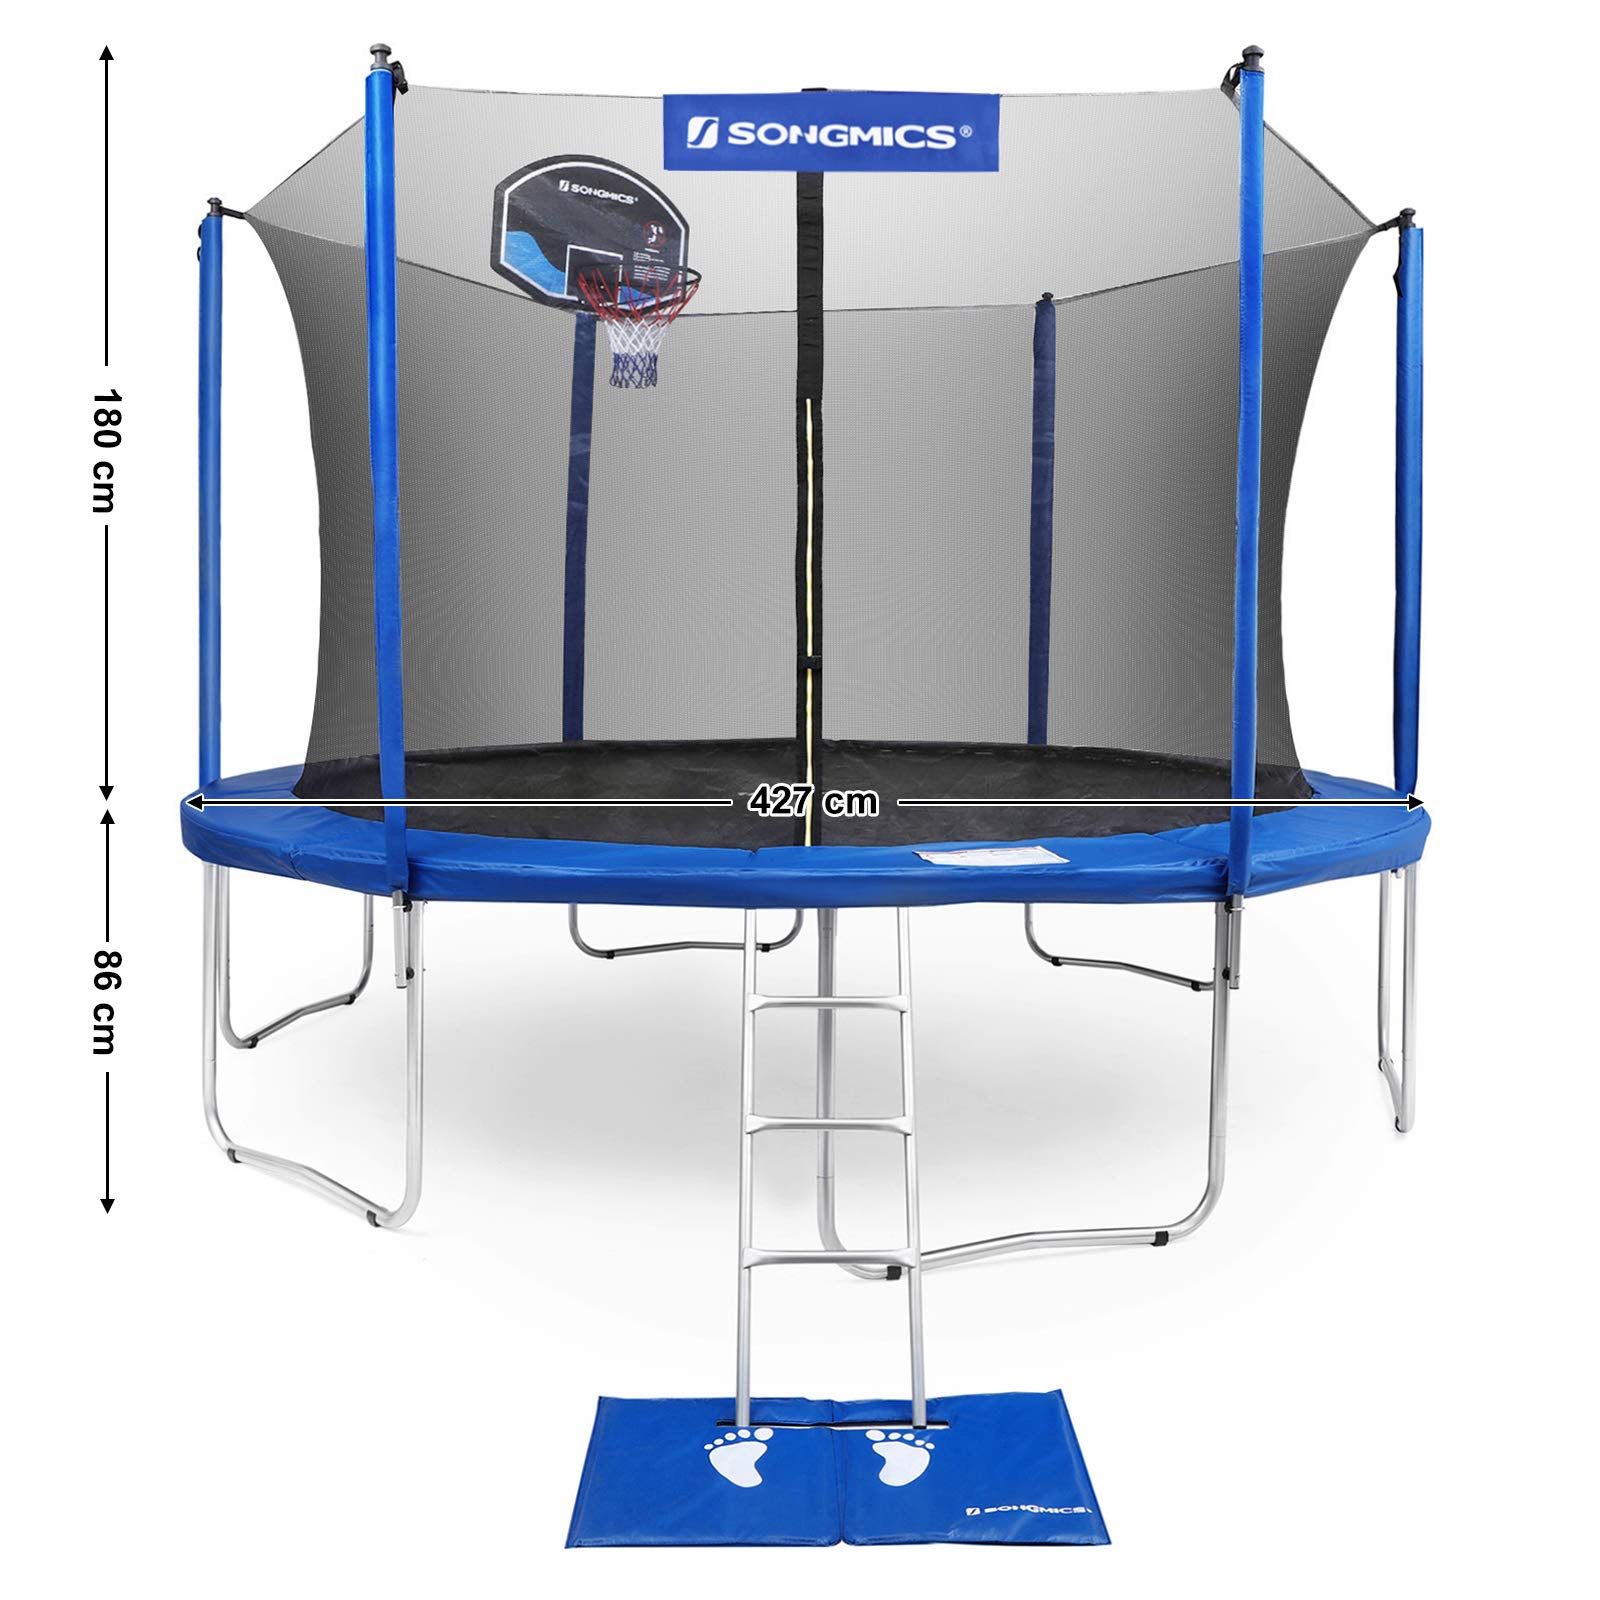 SONGMICS Outdoor Trampoline 14-Feet for Kids with Basketball Hoop and Backboard Enclosure Net Jumping Mat and Safety Spring Cover Padding TÜV Rheinland Certificated According to ASTM and GS USTR14BU by SONGMICS (Image #6)